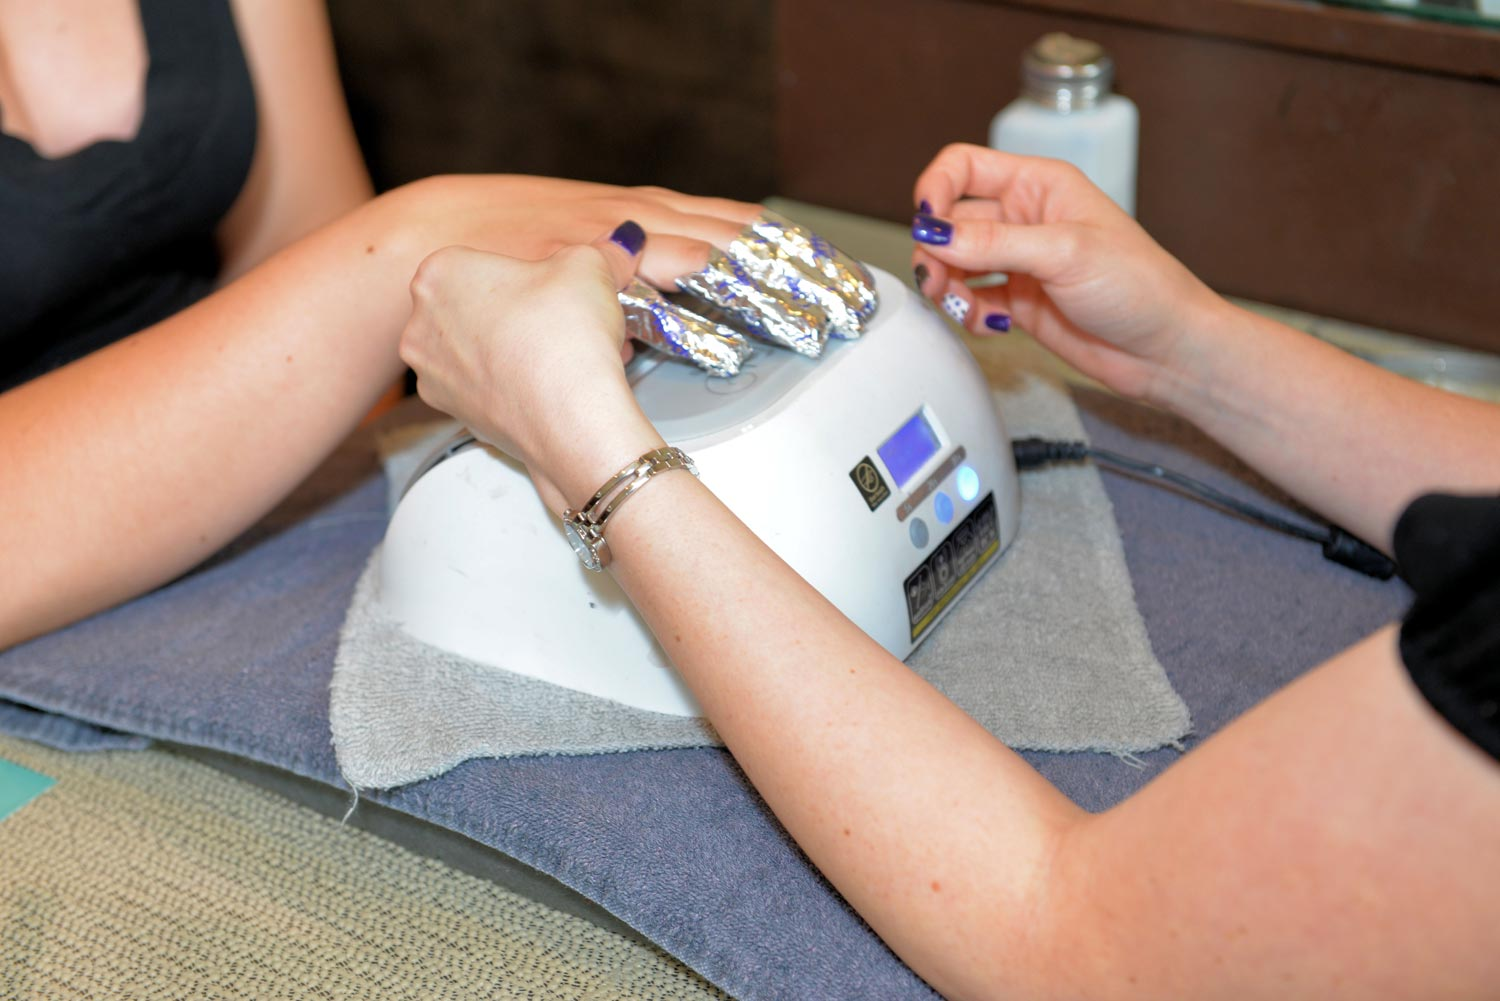 Gel or shellac manicures keep nails fresh and polished much longer than traditional manicures.